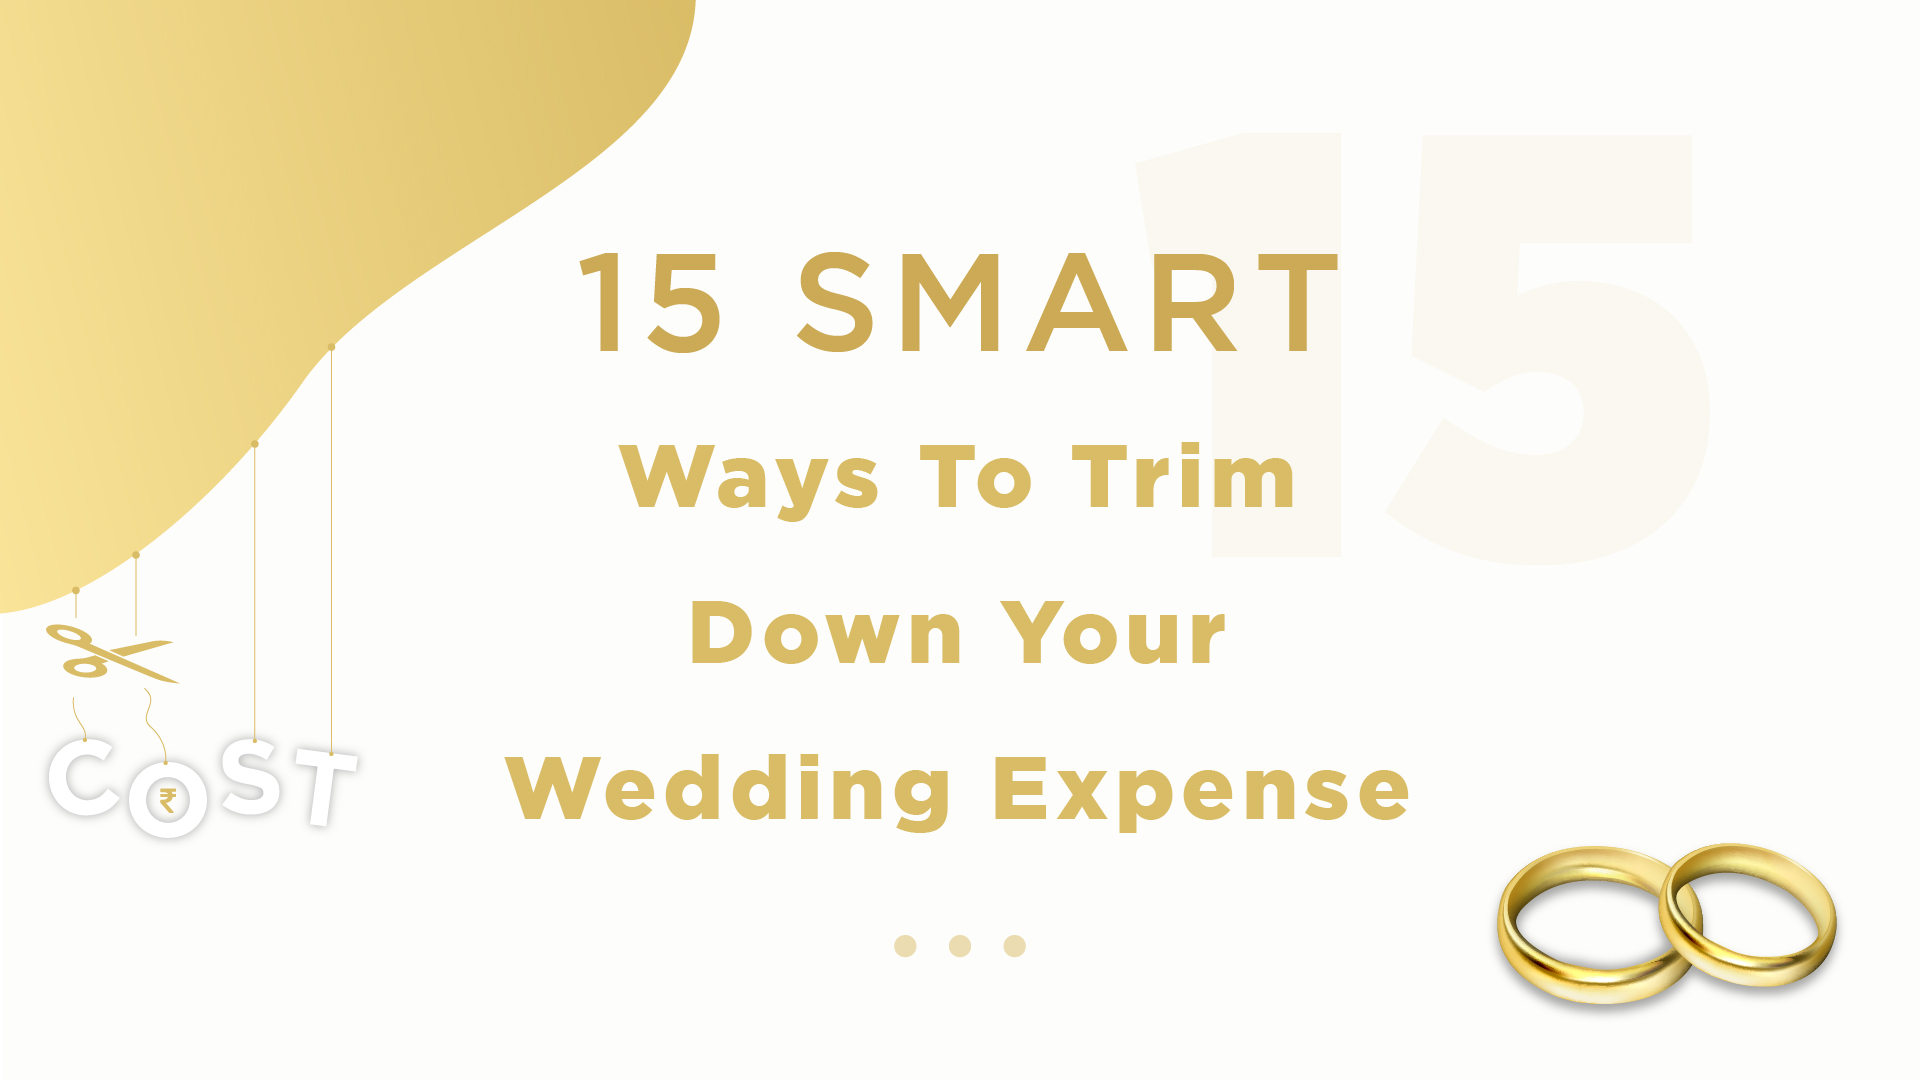 15 Smart Ways to Trim Down Your Wedding Expenses